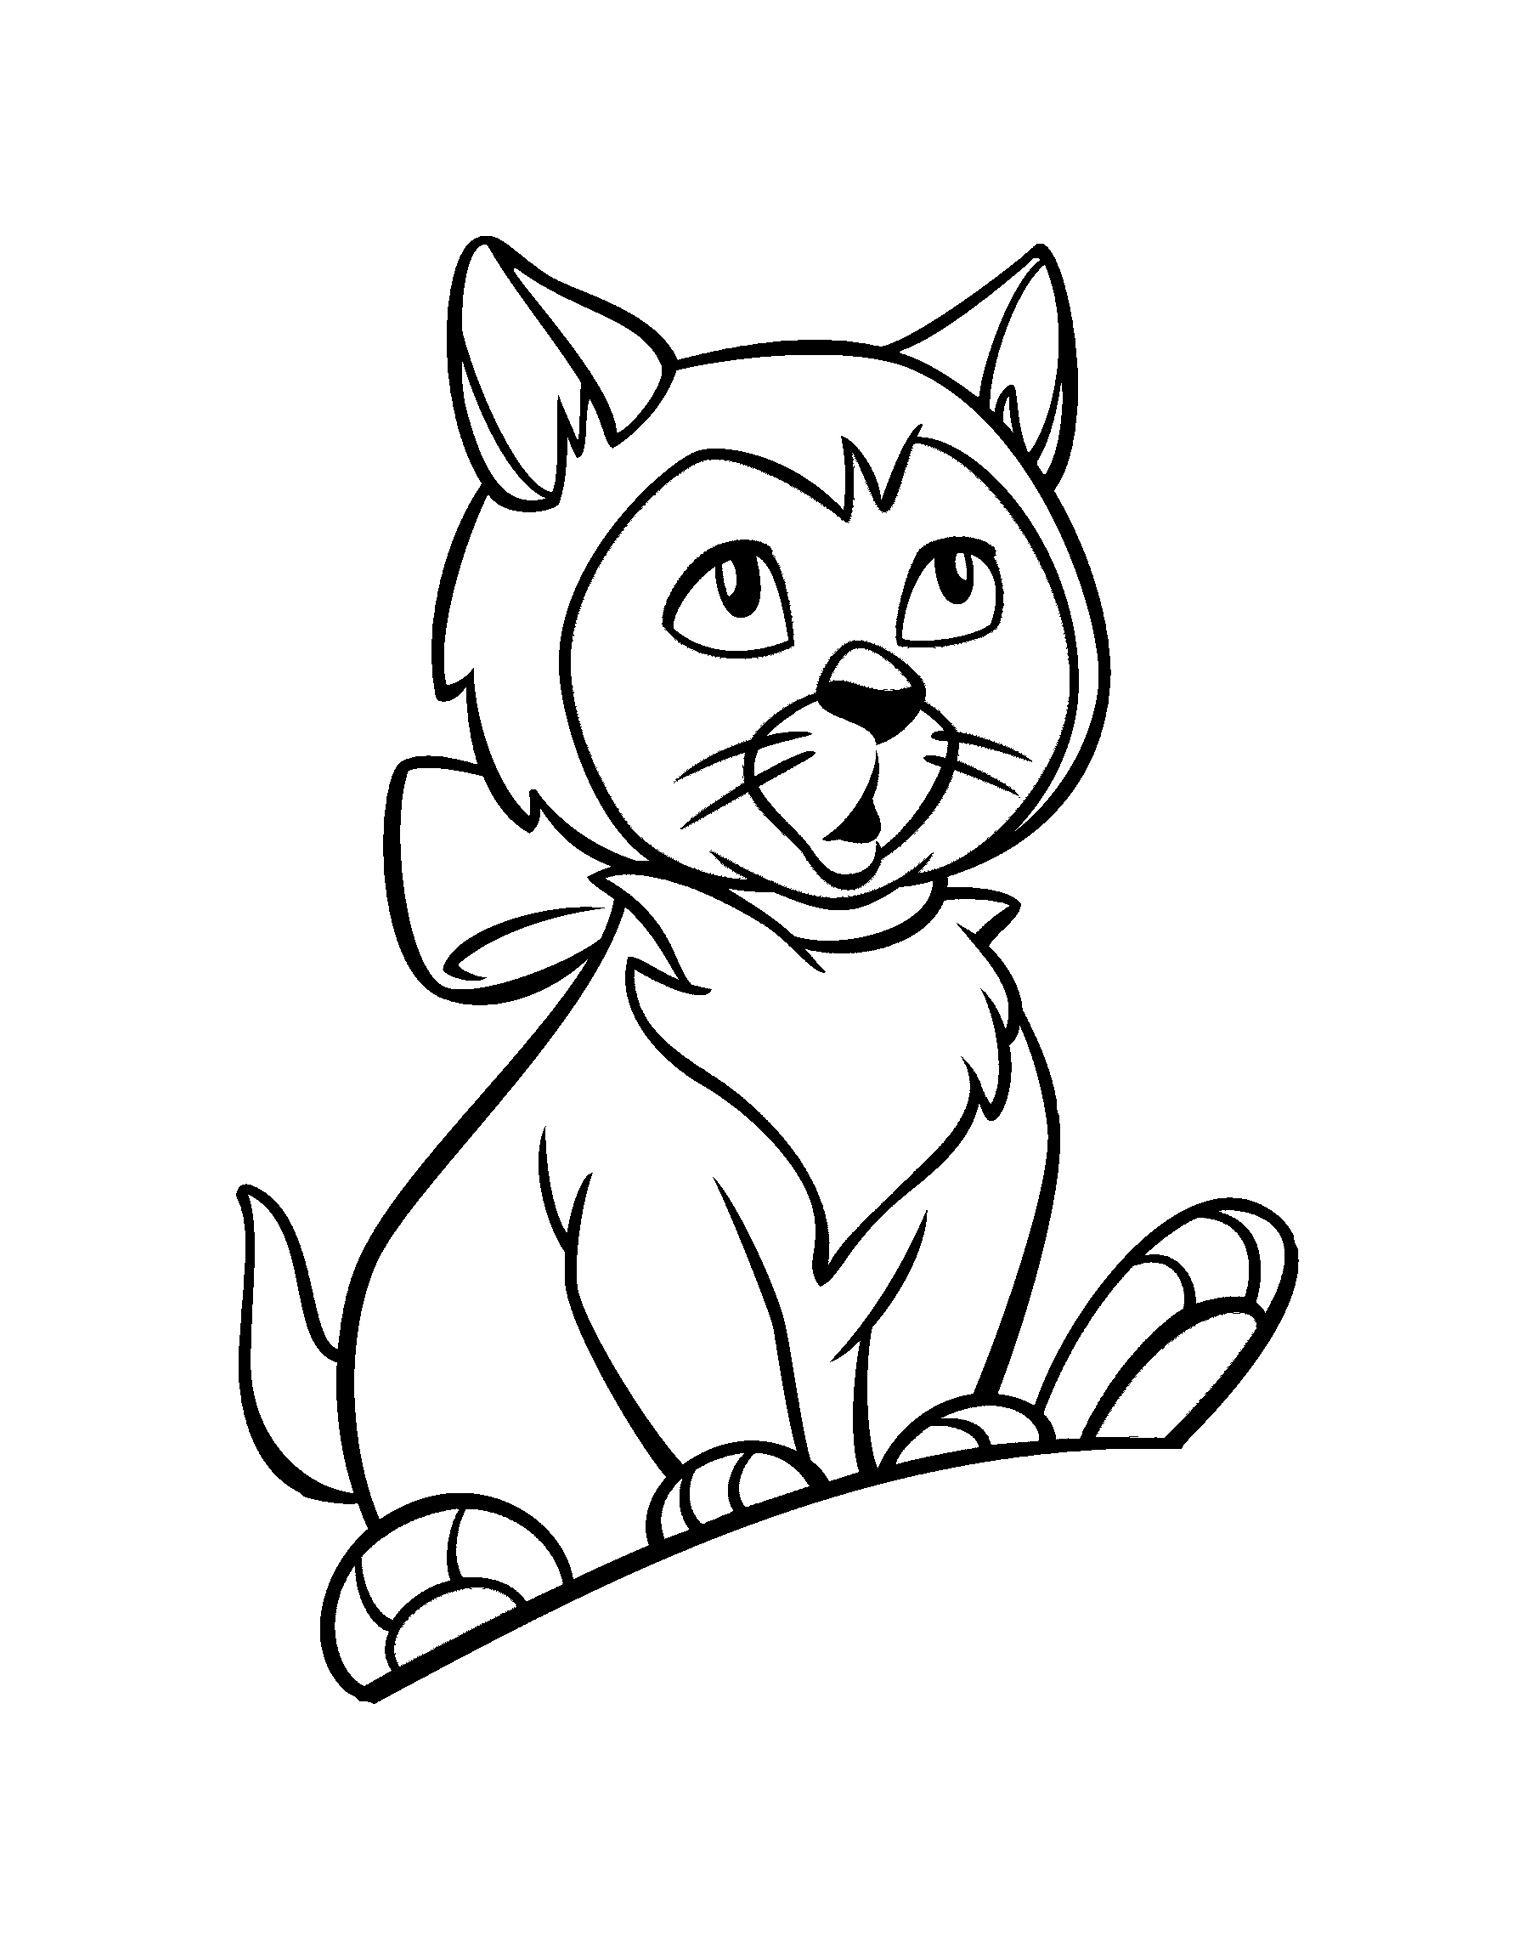 Surprised uncolored cat with a bow collar tattoo design